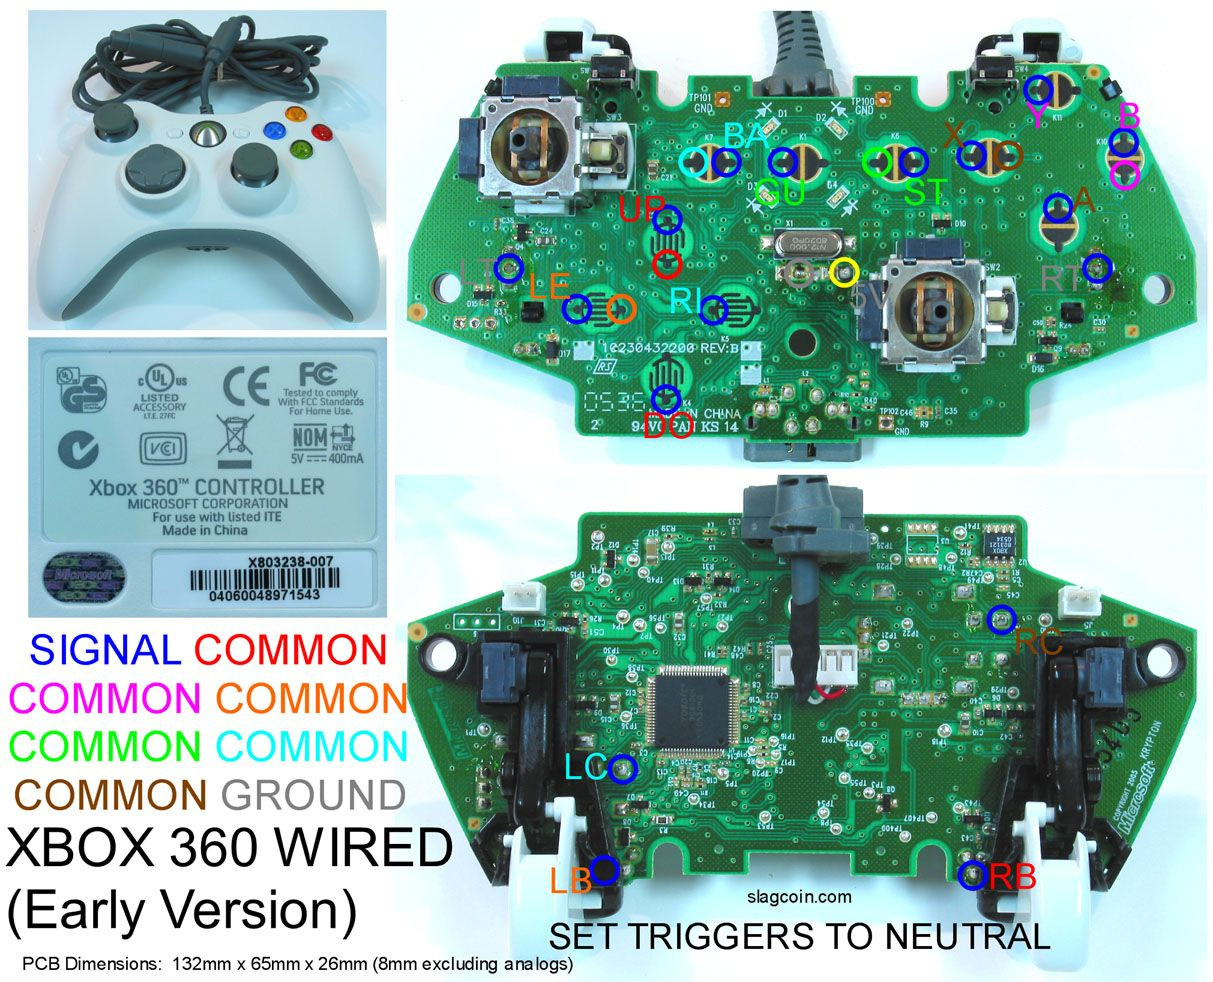 Gaming gadgets and mods xbox 360 and original xbox controller pcb gaming gadgets and mods xbox 360 and original xbox controller pcb diagrams for mods or making your own joystick ccuart